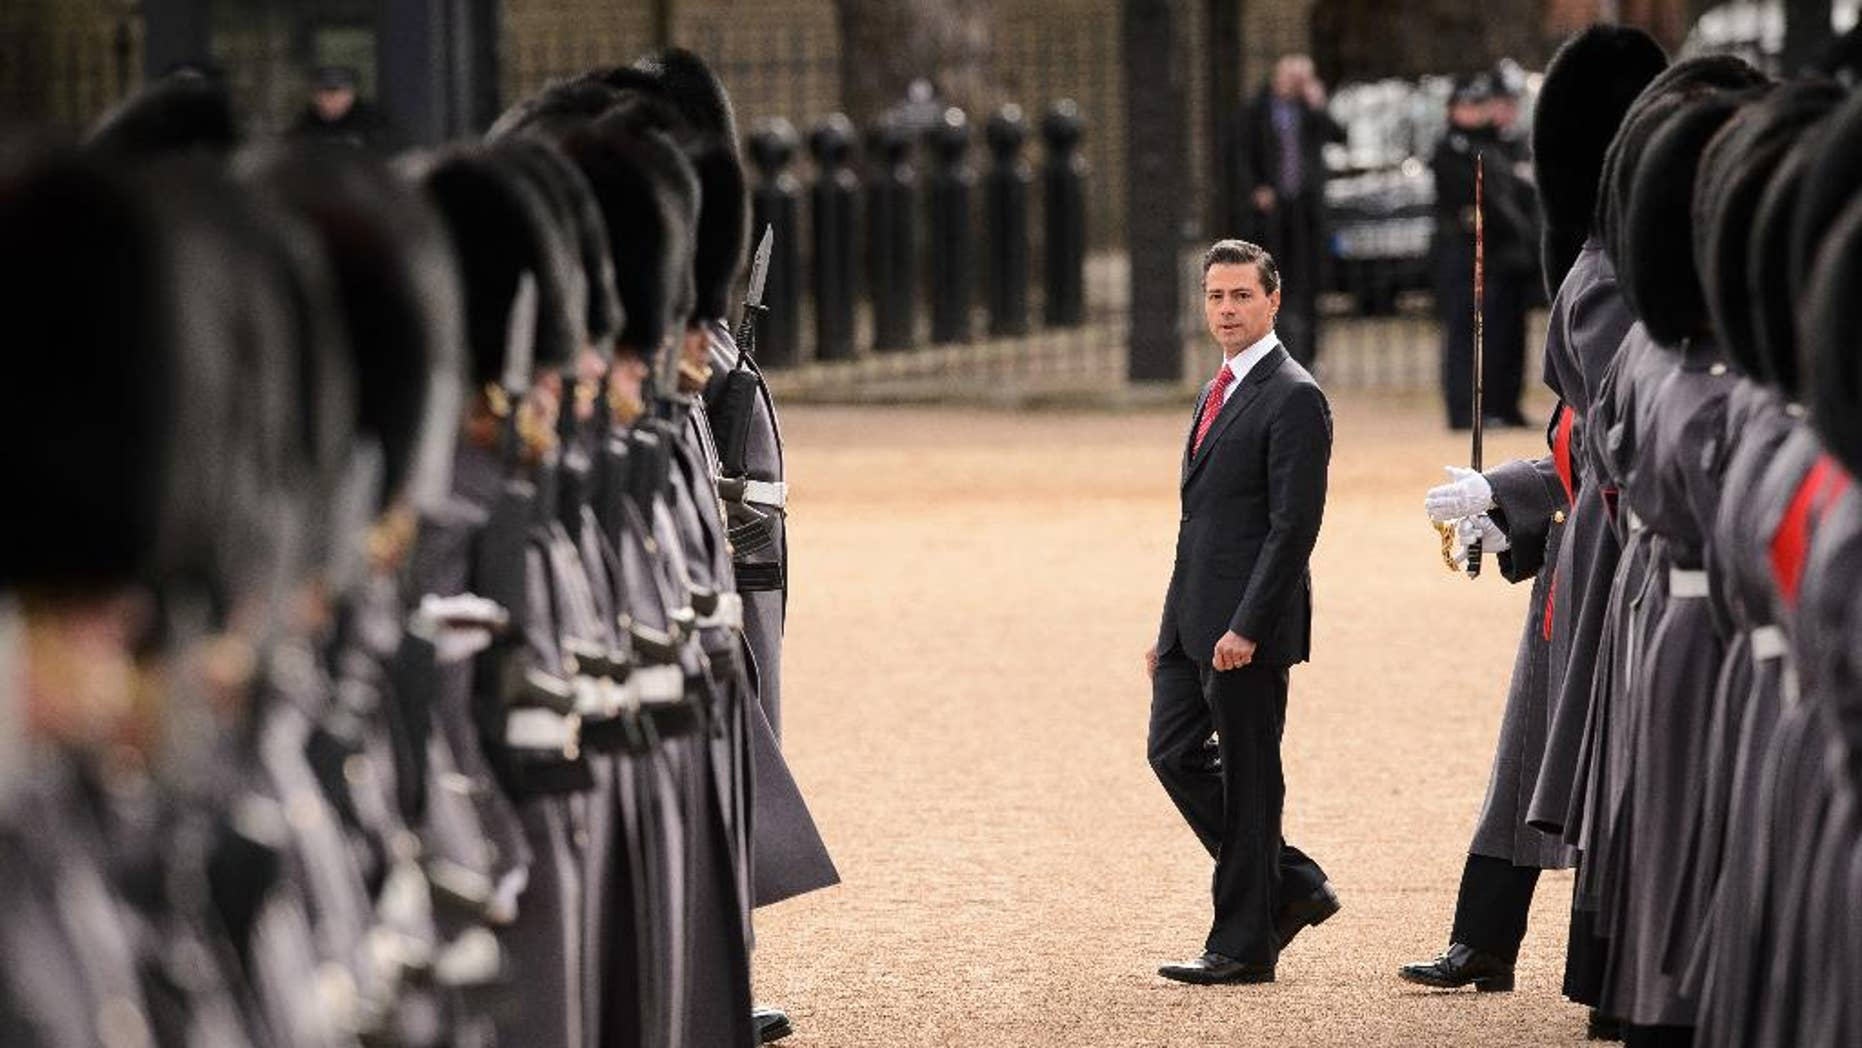 Mexican President Enrique Pena Nieto, centre, inspects a Guard of Honour during a ceremonial welcome in central London on Tuesday  March 3, 2015. The President and his wife are on a 3 day state visit to Britain. (AP Photo/Loen Neal, Pool)